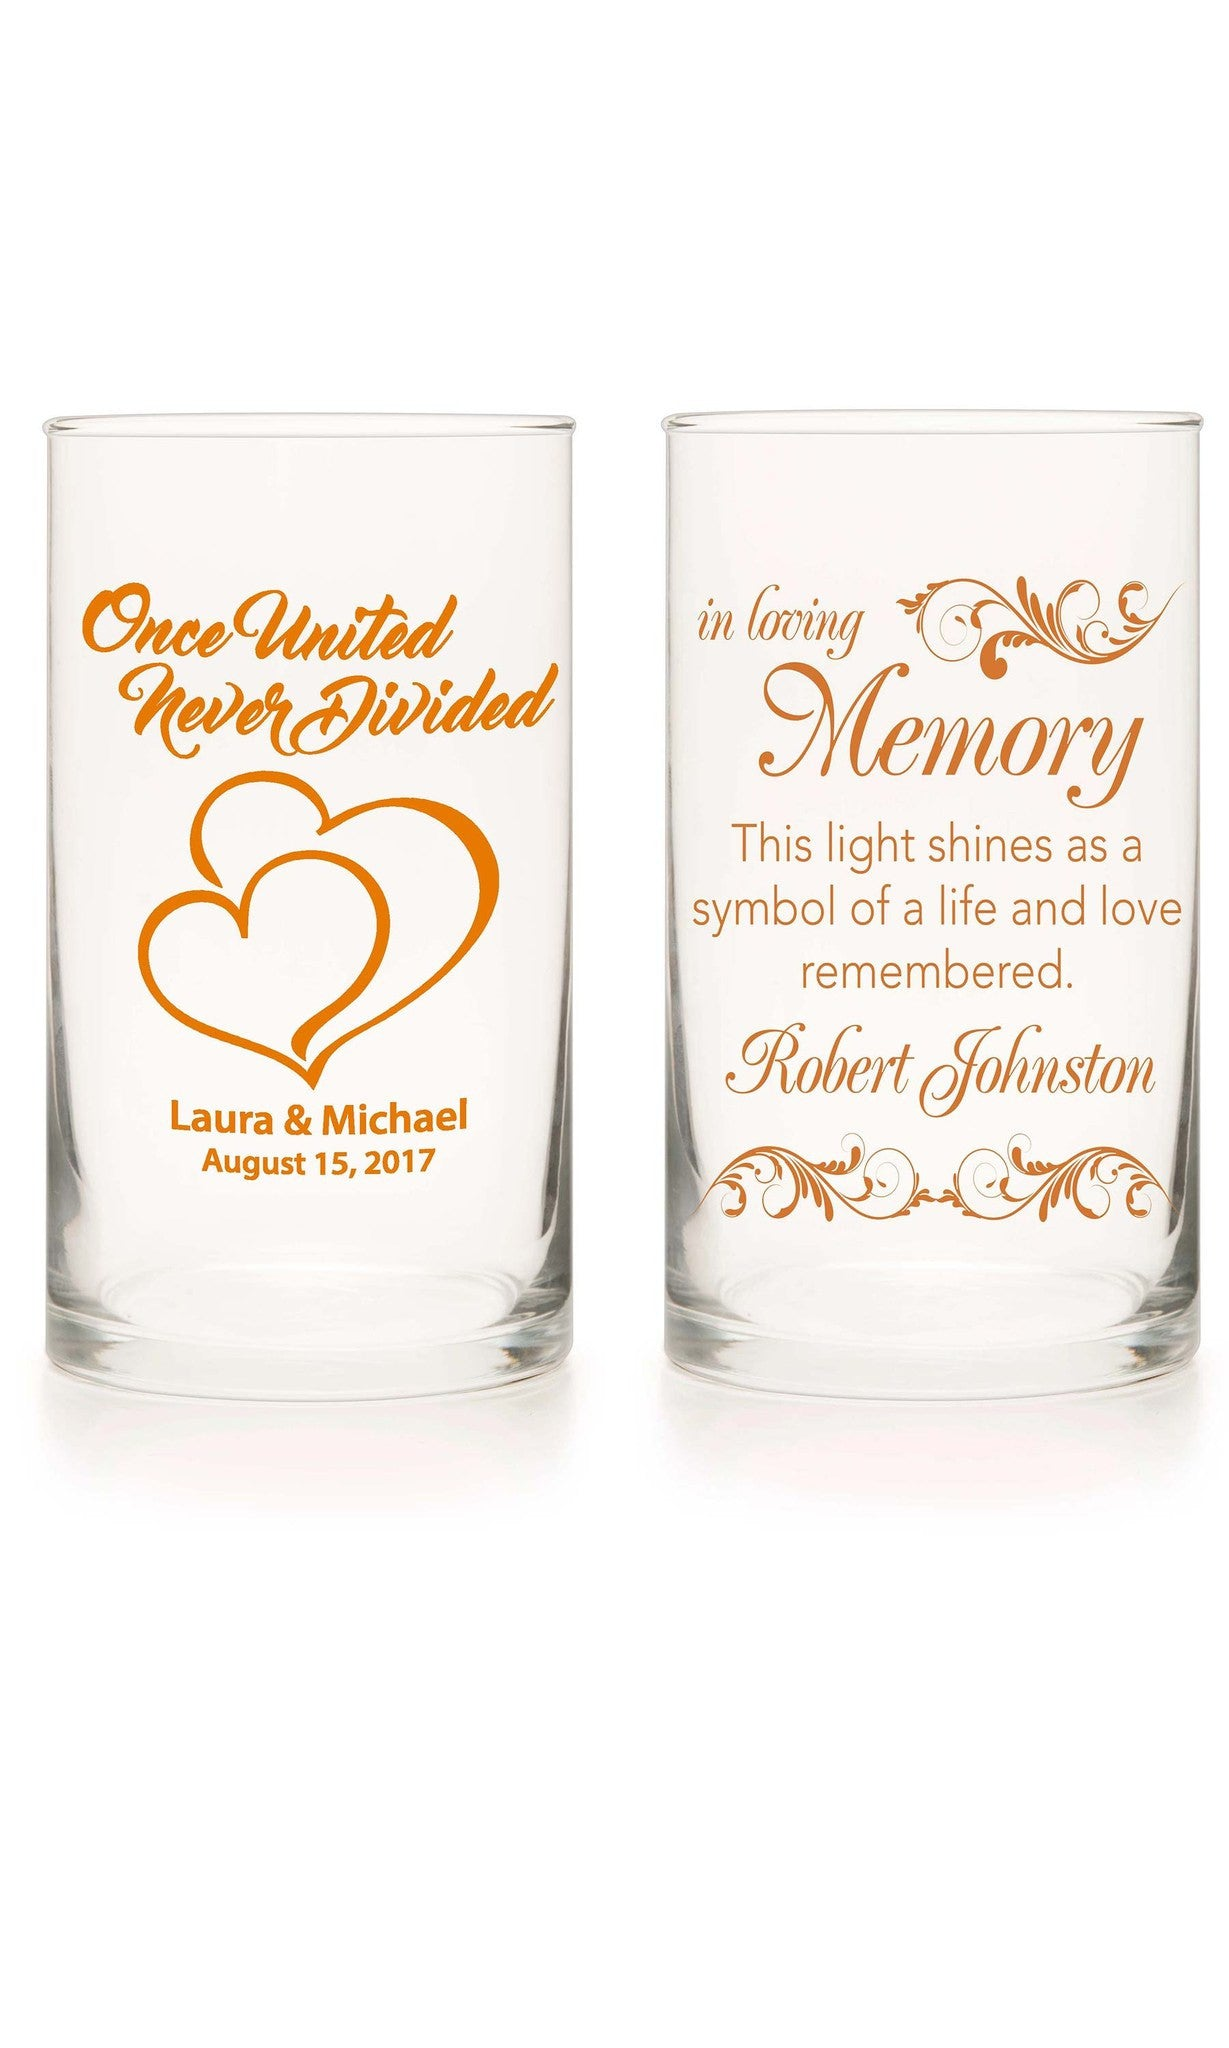 Unity Candle & Memorial Candle Set - Always A Bridesmaid Orange - Personalized Candle Holders - Wedding Candles - 8